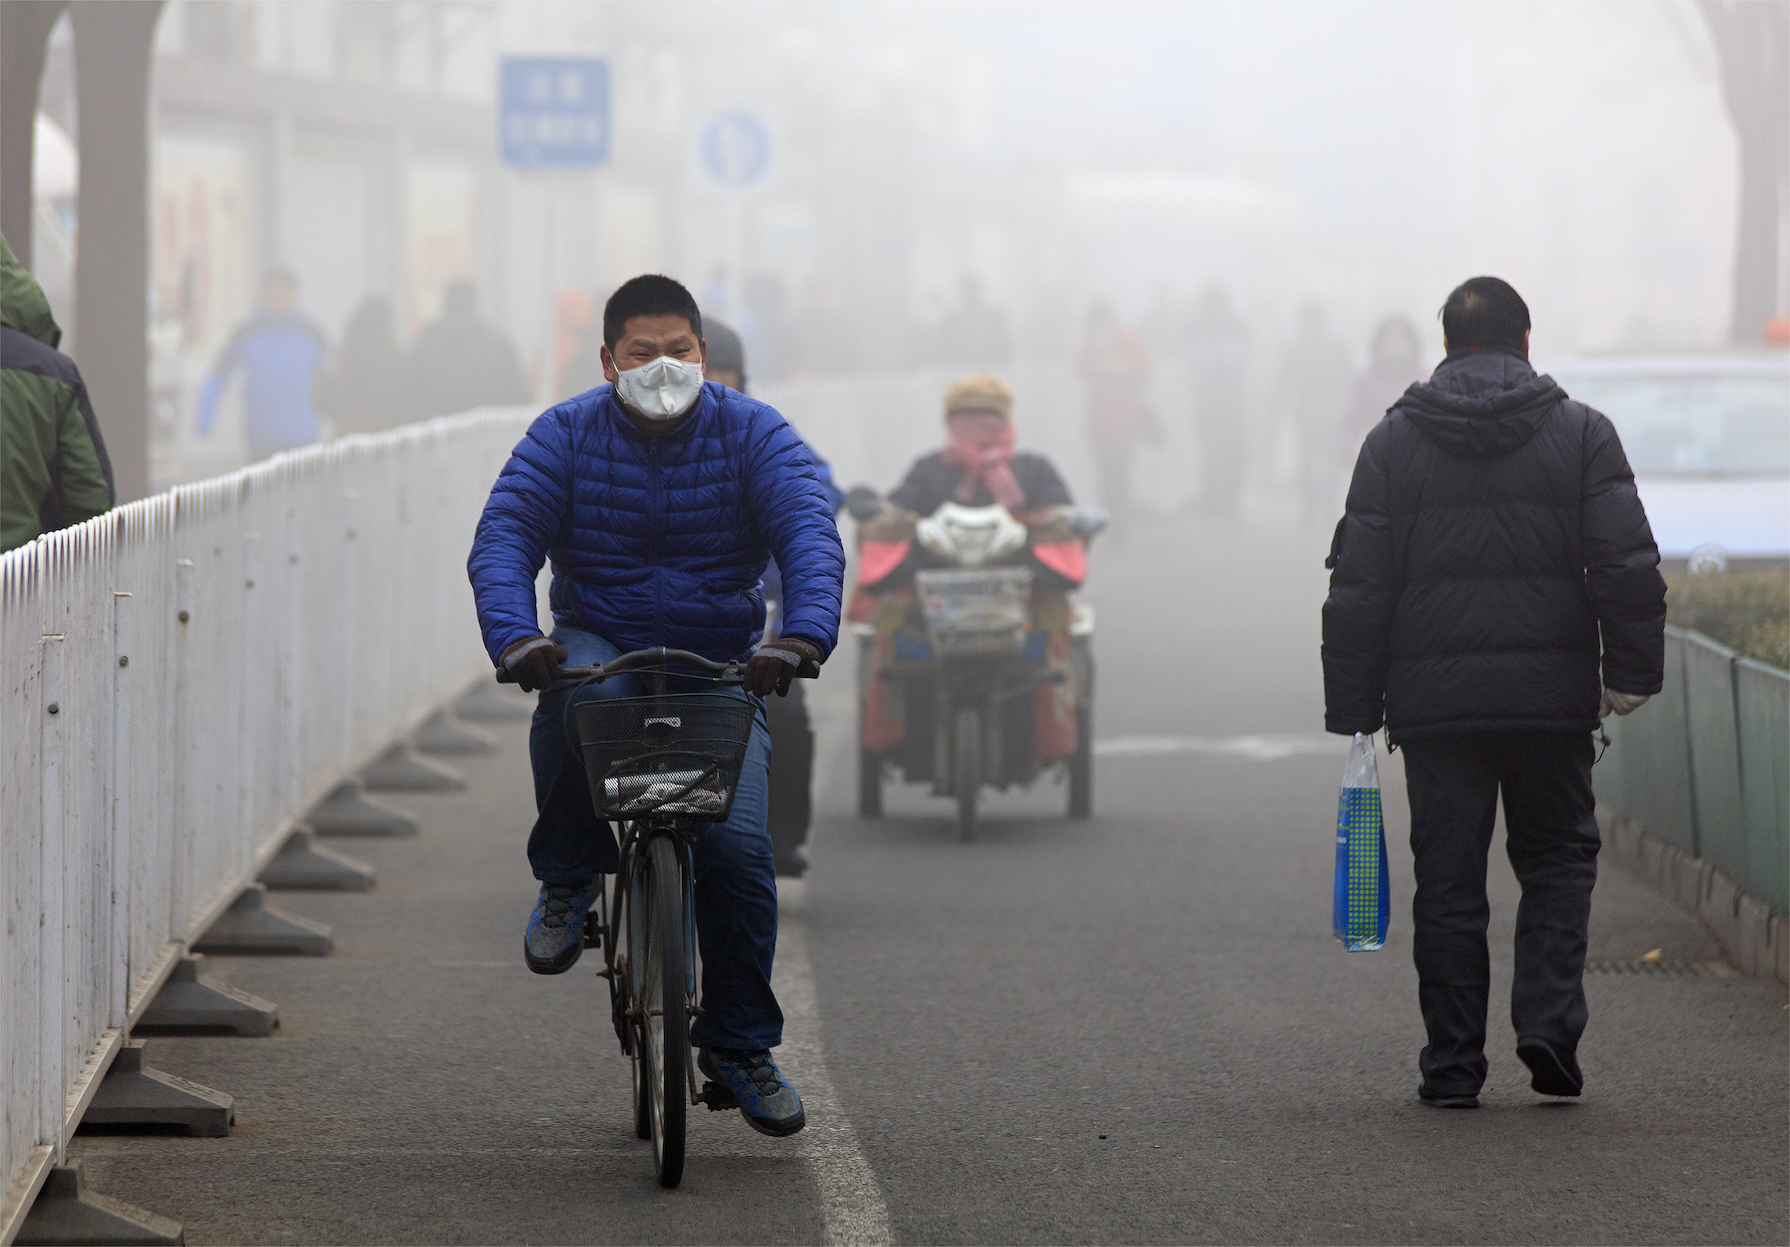 A new report from China's environment ministry has revealed that nationwide pollution sources have skyrocketed in the last 8 years.